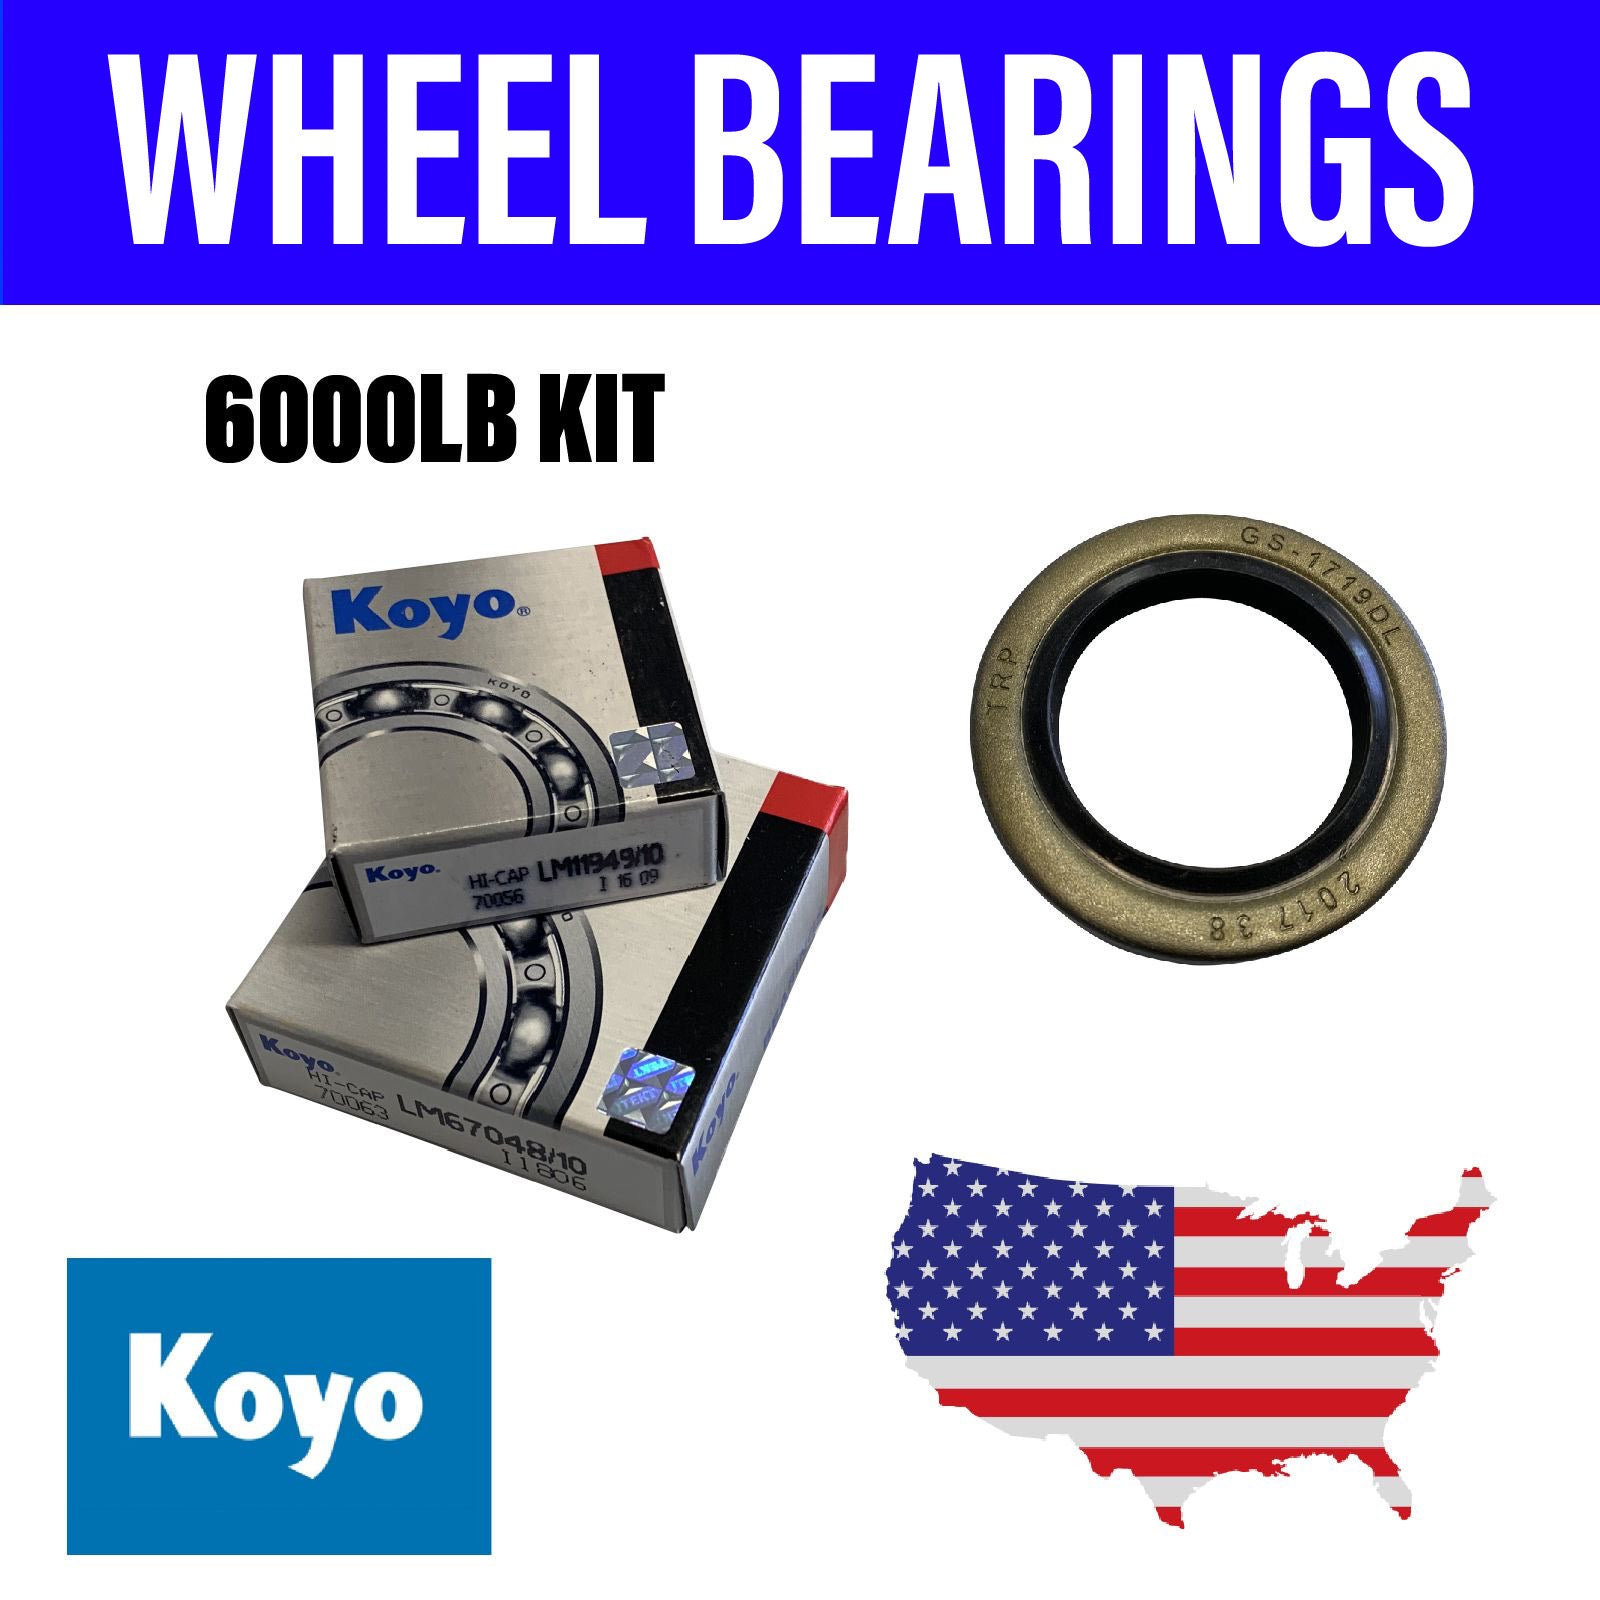 American 6000LB Wheel Bearing Kit